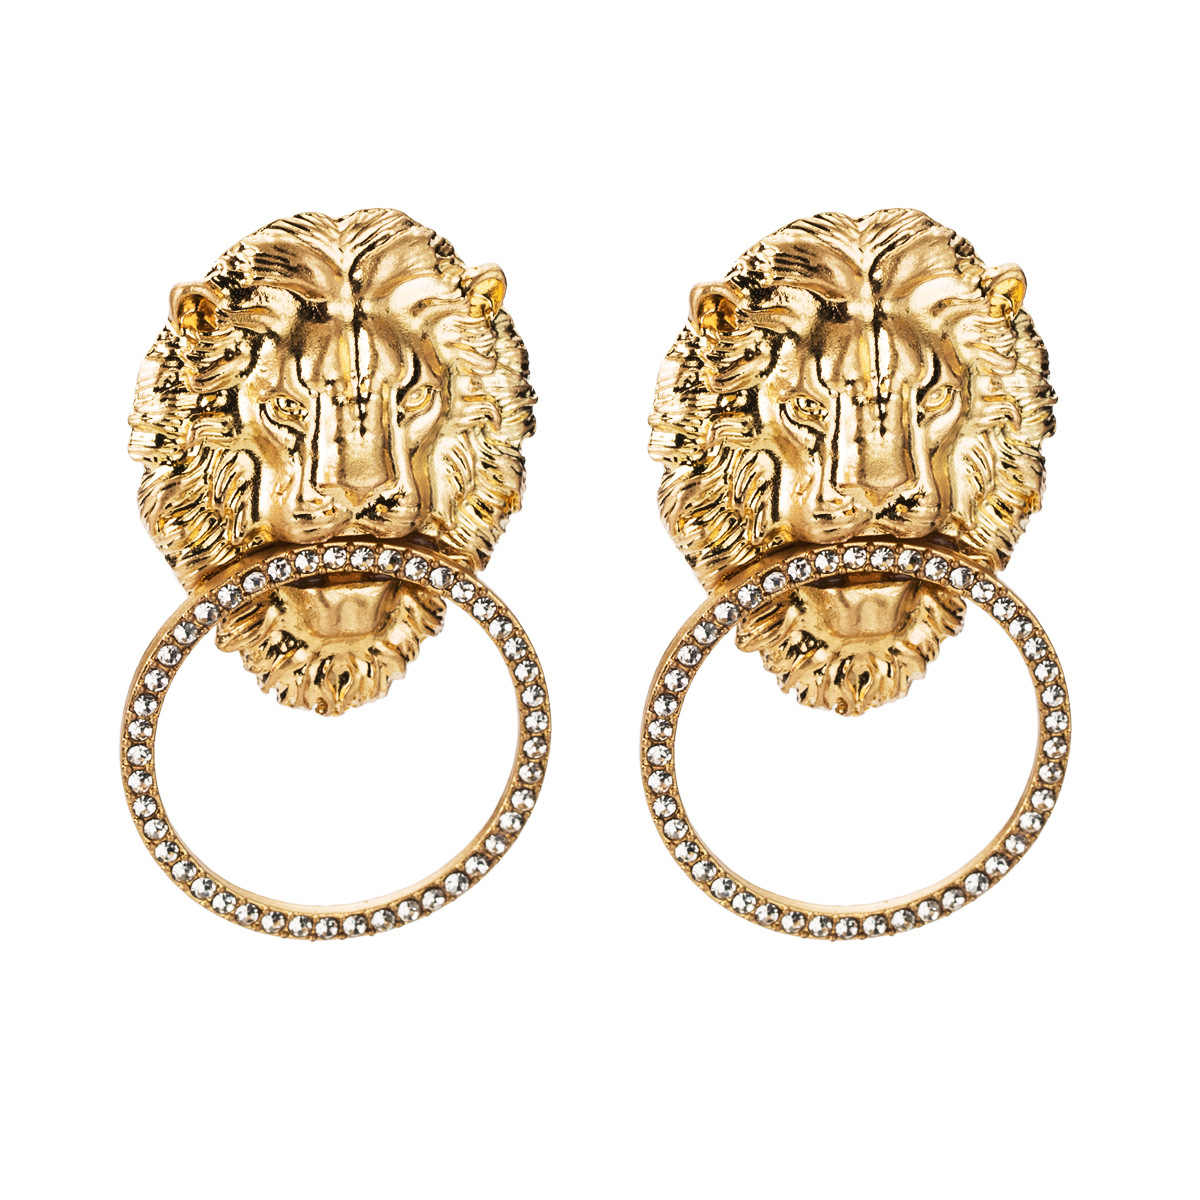 GEREIT 2019 ZA Alloy Lion Head Charms Drop Earrings Jewelry Hot Sale Lady's Novelty Collection Earrings Accessories Jewelry Gift